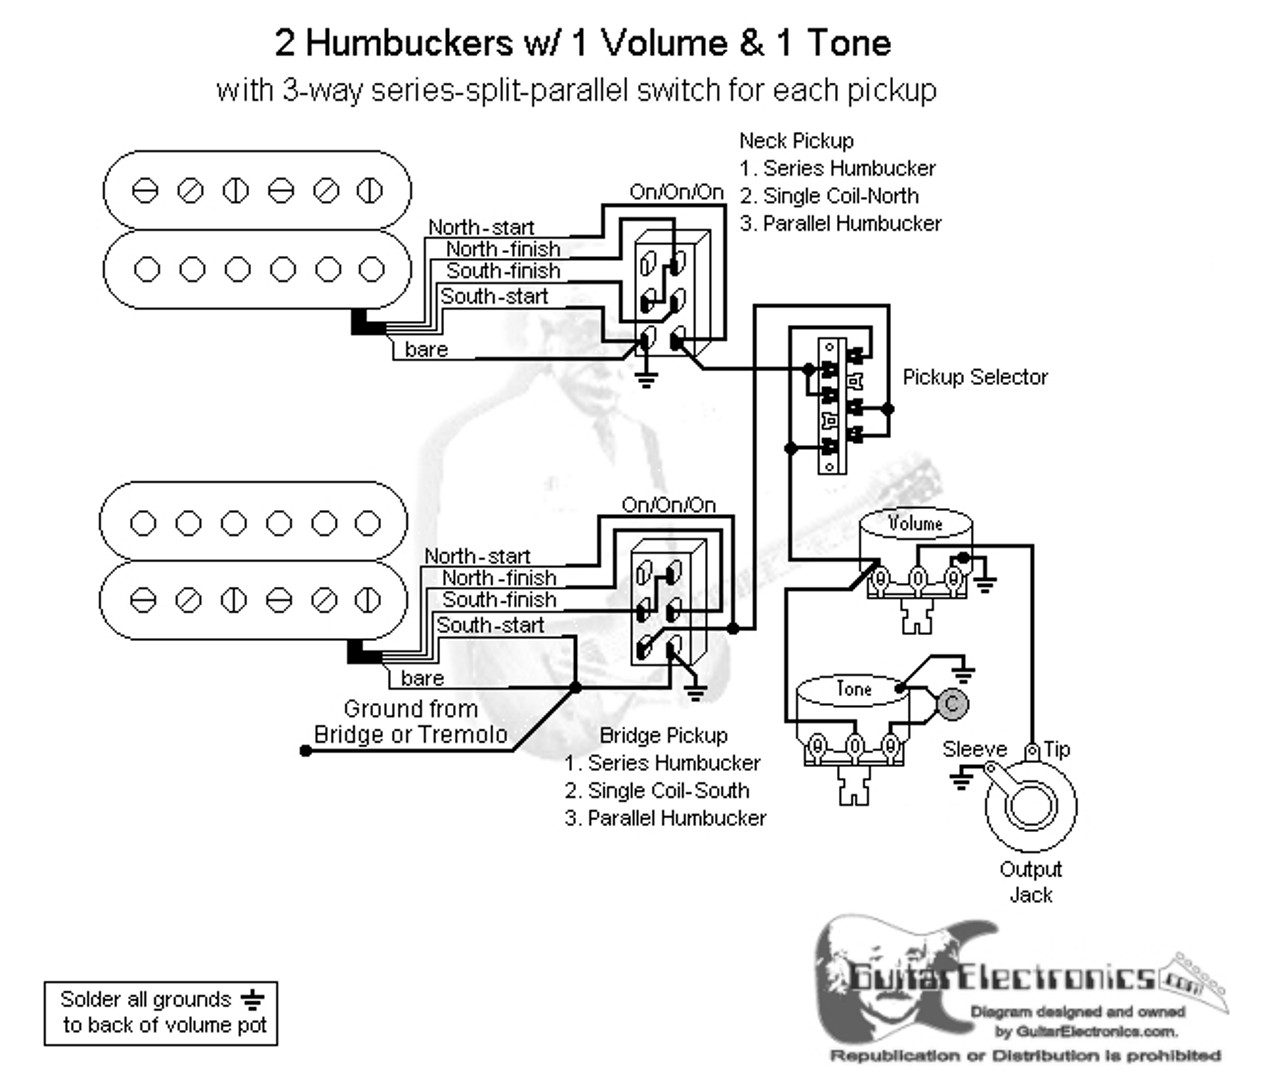 small resolution of 2 humbuckers 3 way lever switch 1 volume 1 tone series split import strat wiring diagram